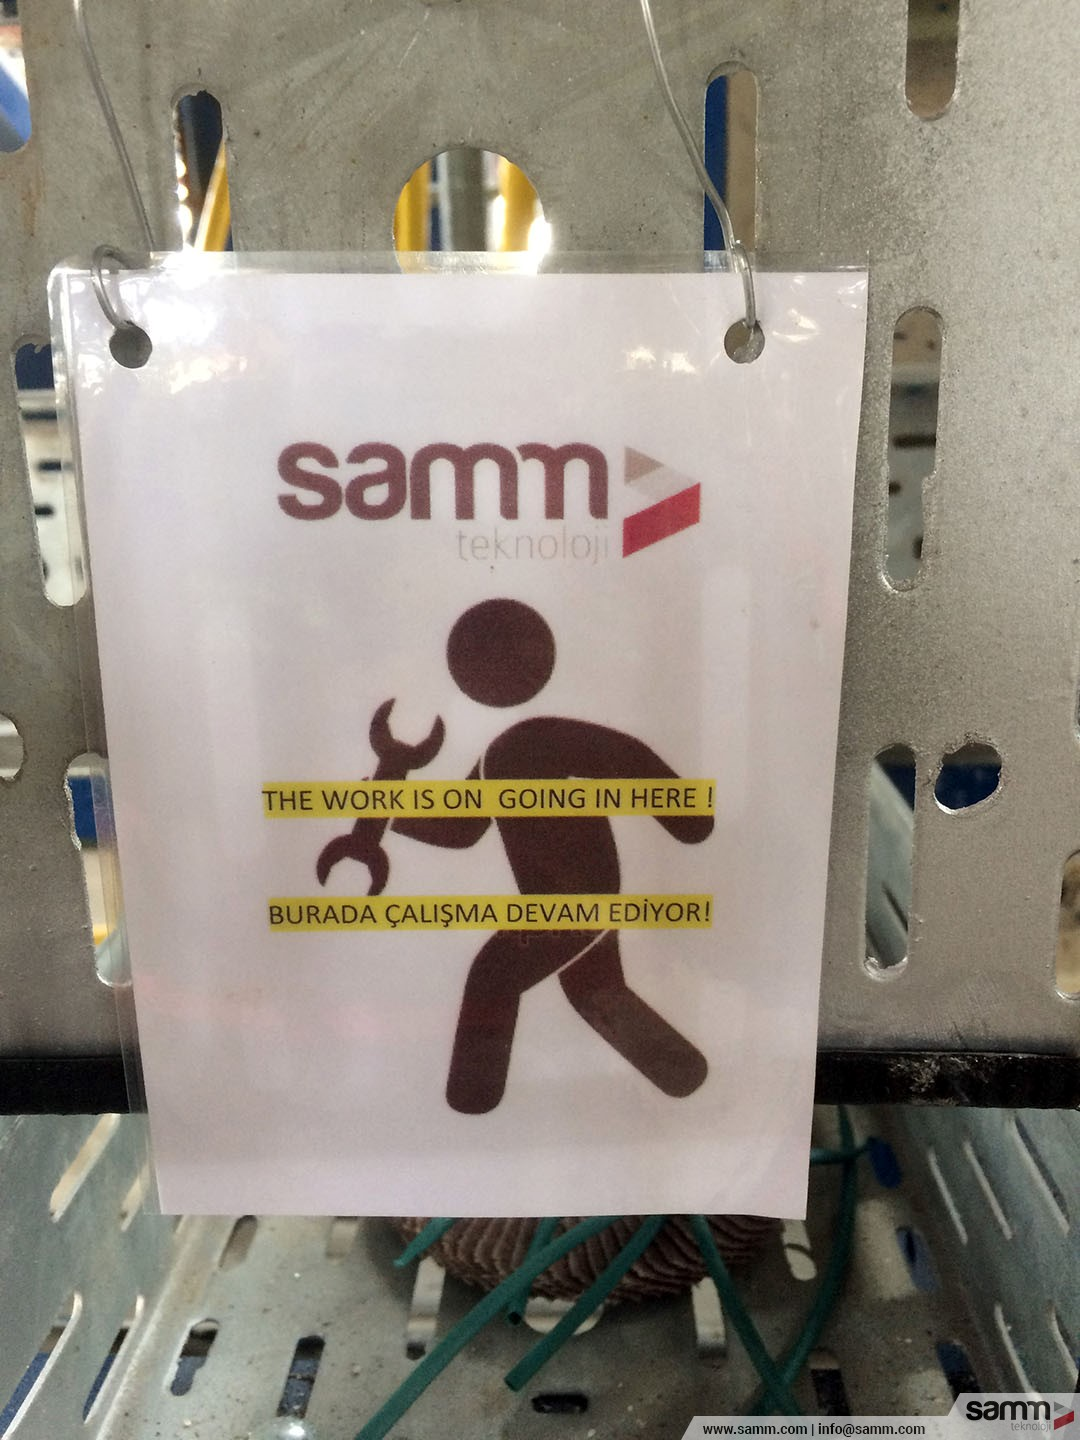 Samm Teknoloji | Label which is being used in break times by an employee.